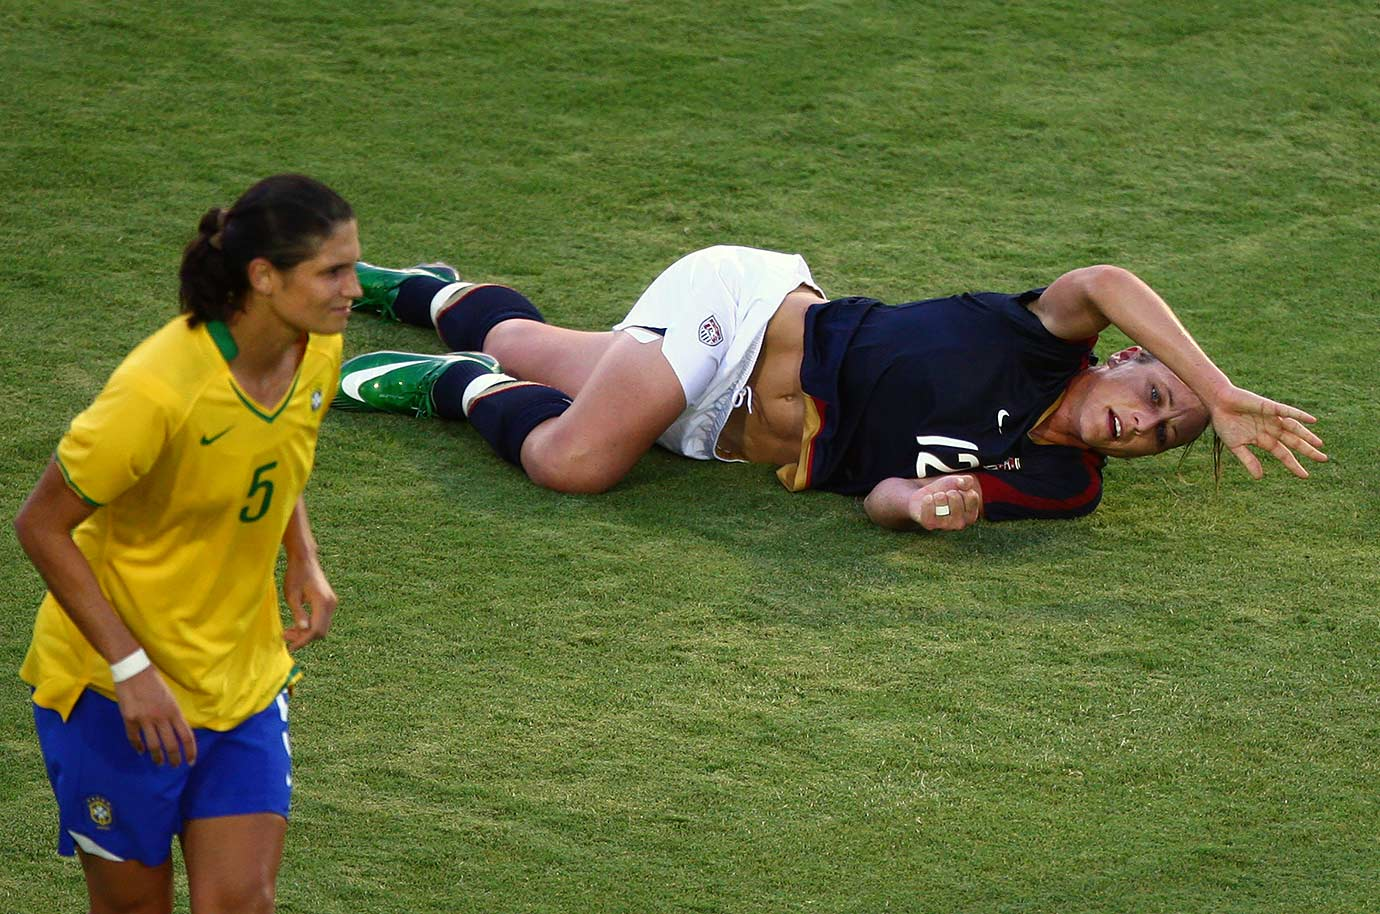 July 16, 2008 — USA vs. Brazil